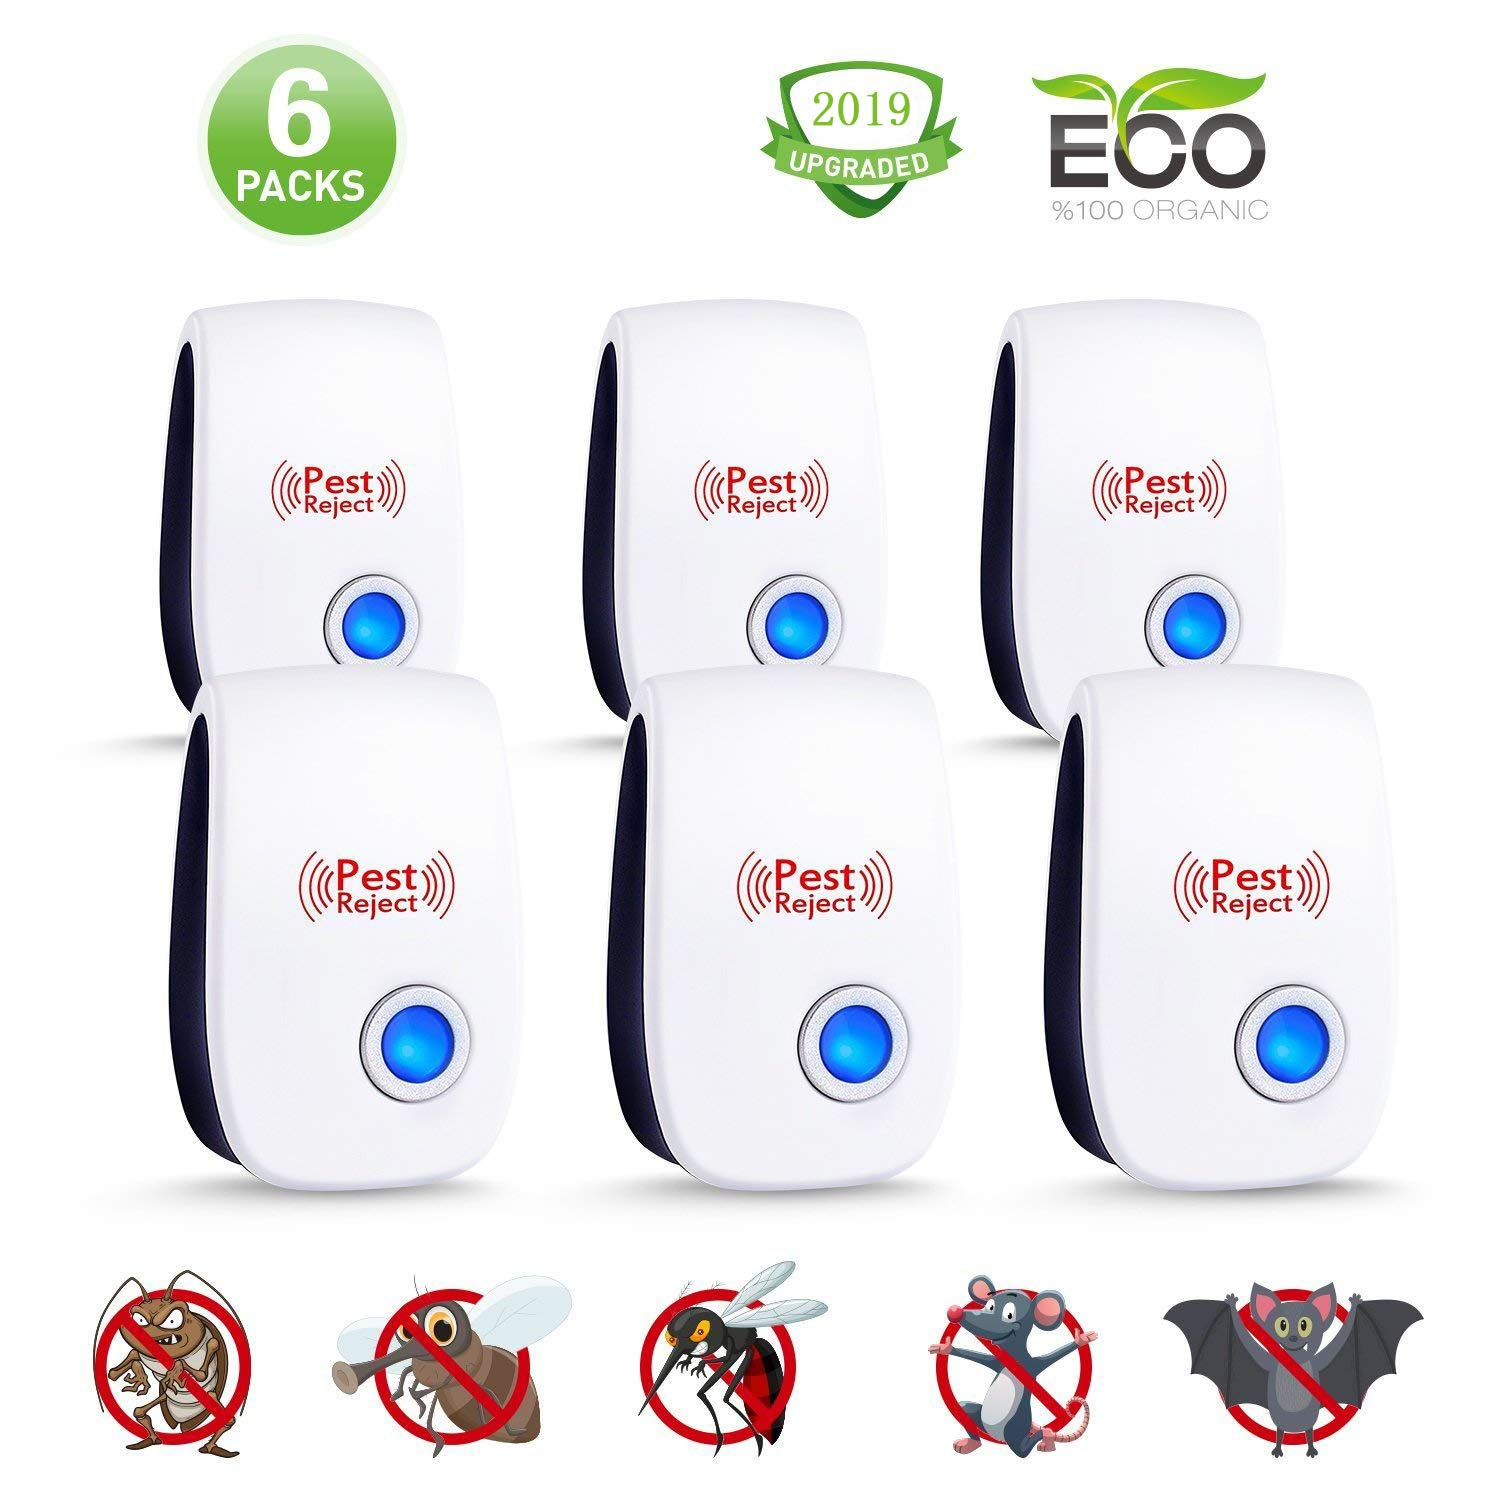 Ultrasonic Pest Repeller (6 Pack) - Plug in Electronic Repellent, Pest Control, No More Pest, Best Pest Controller for Mice, Mosquito, Spider, Cockroach, Flies, Bed Bugs and Other Insects-2019 by LIVING SPACE INNOVATION